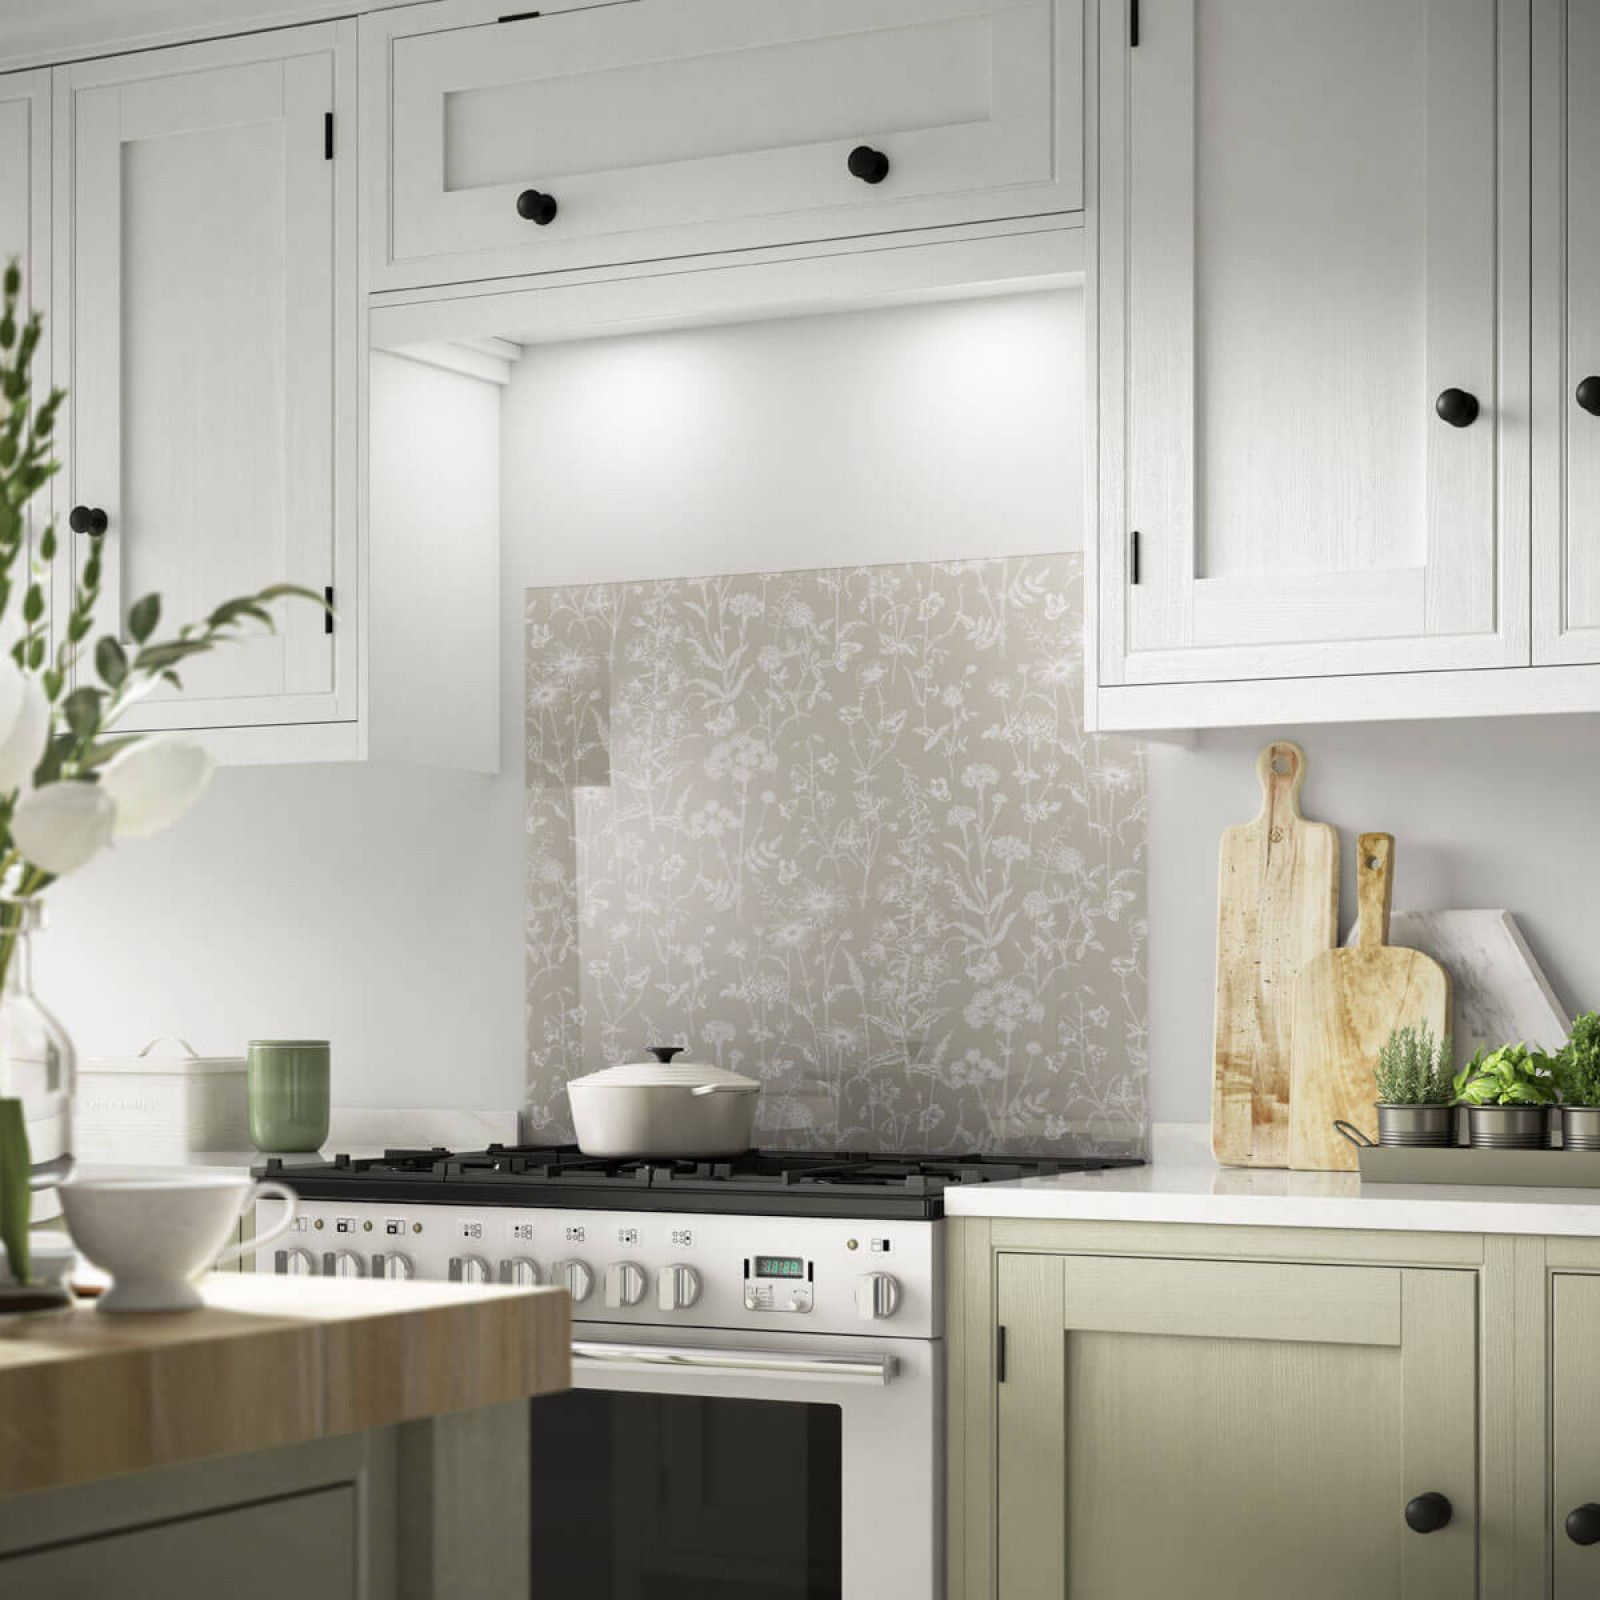 This beautiful 900x750mm Laura Ashley Splashback from the Statement Prints  range is made from toughened glass 227c51654